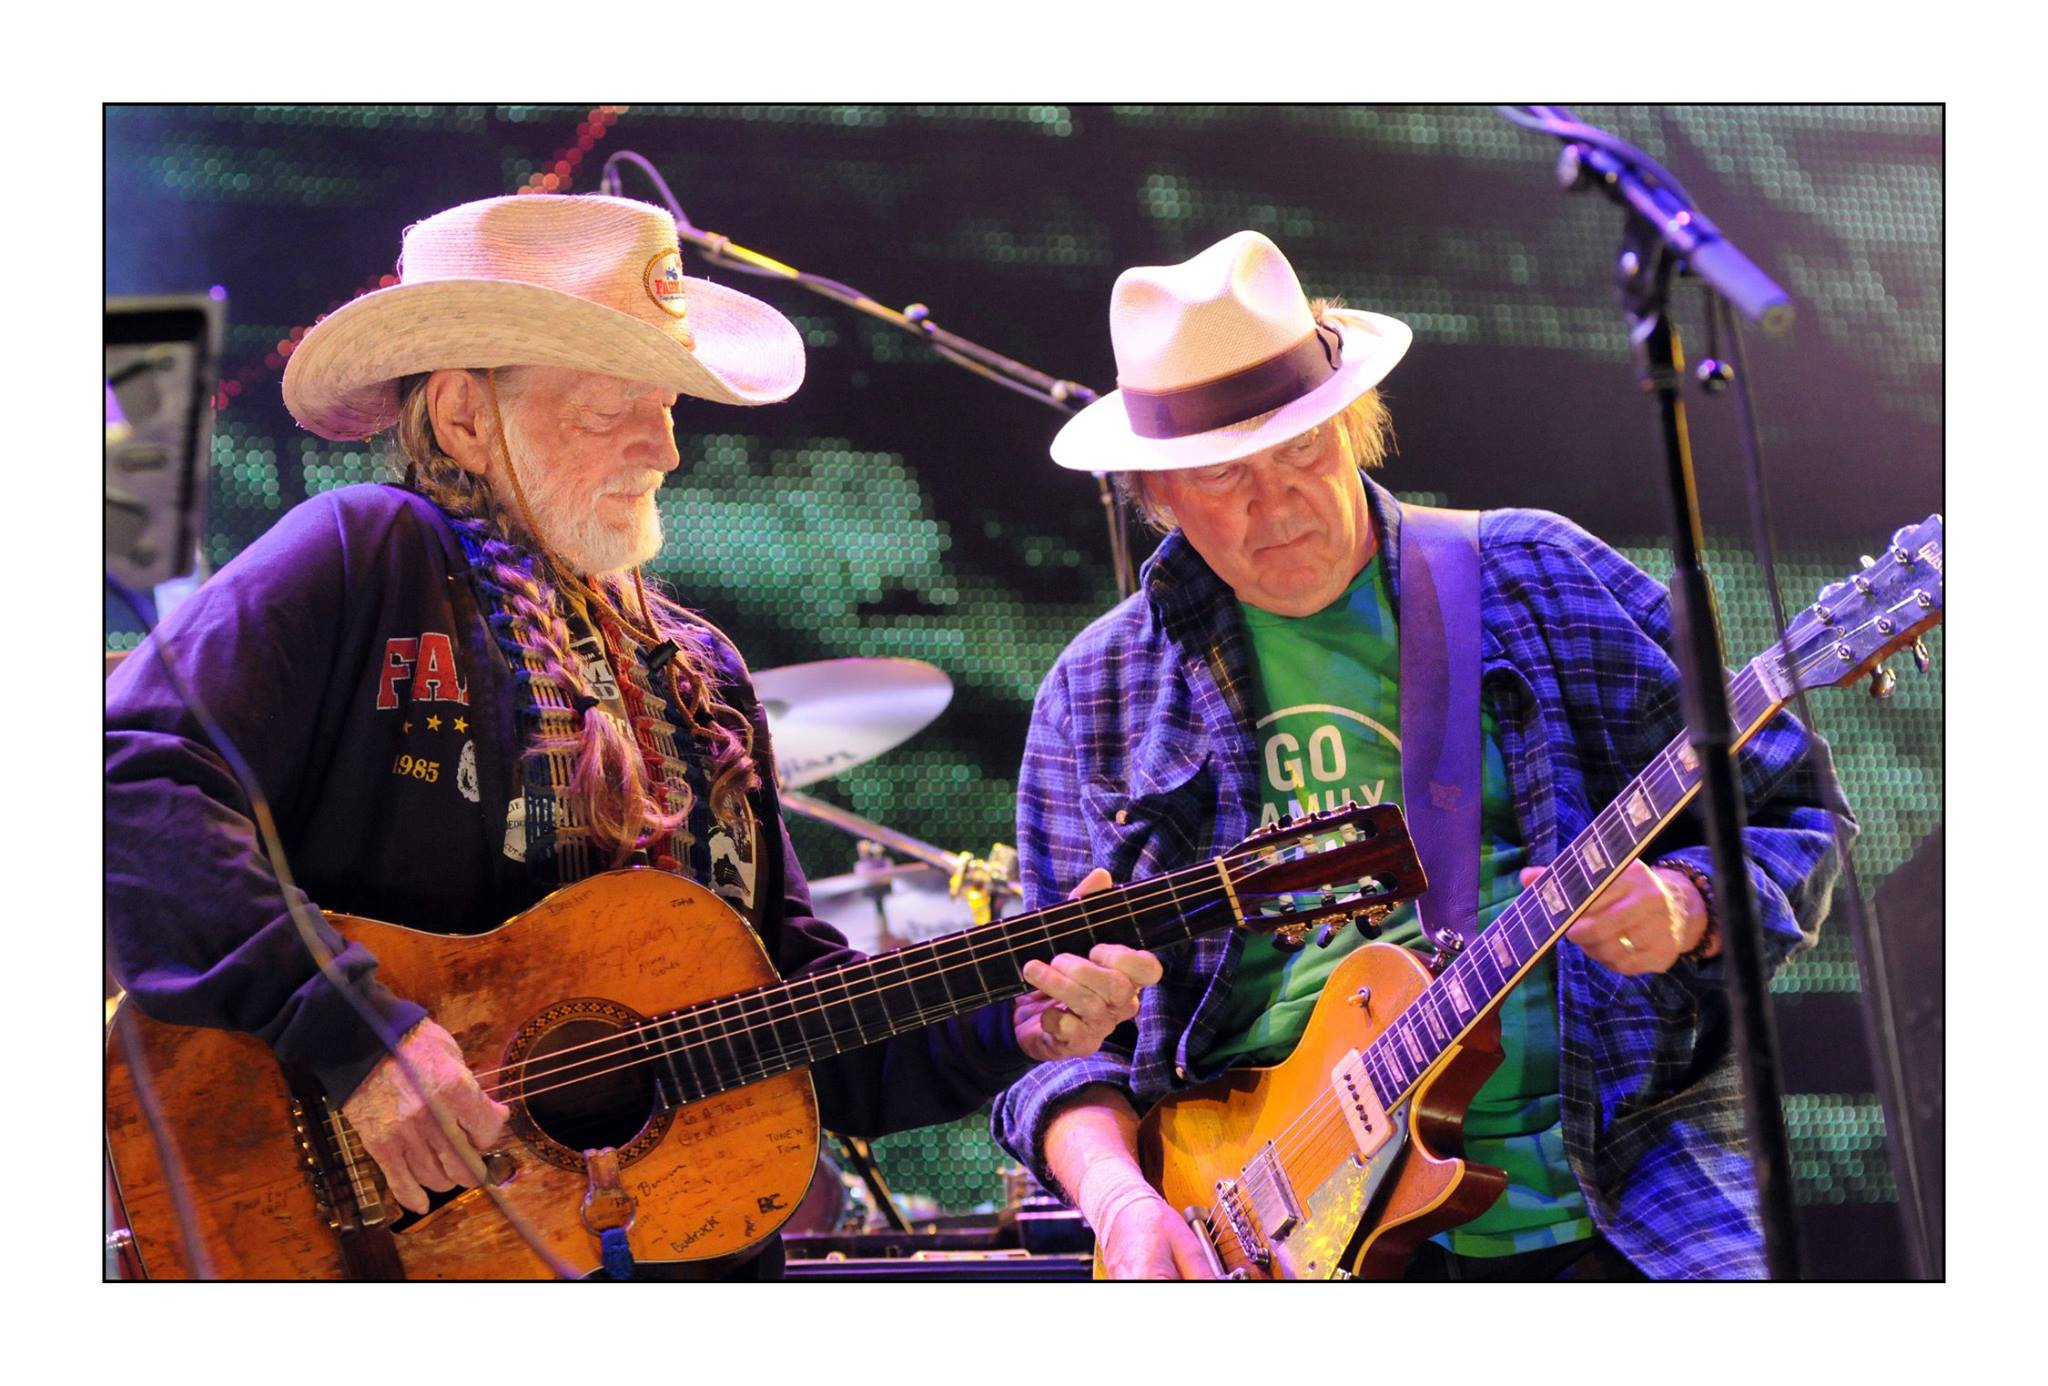 OUTLAW MUSIC FESTIVAL: SCHEDULE, TICKET INFO FOR WILLIE NELSON, NEIL YOUNG EVENT IN SCRANTON